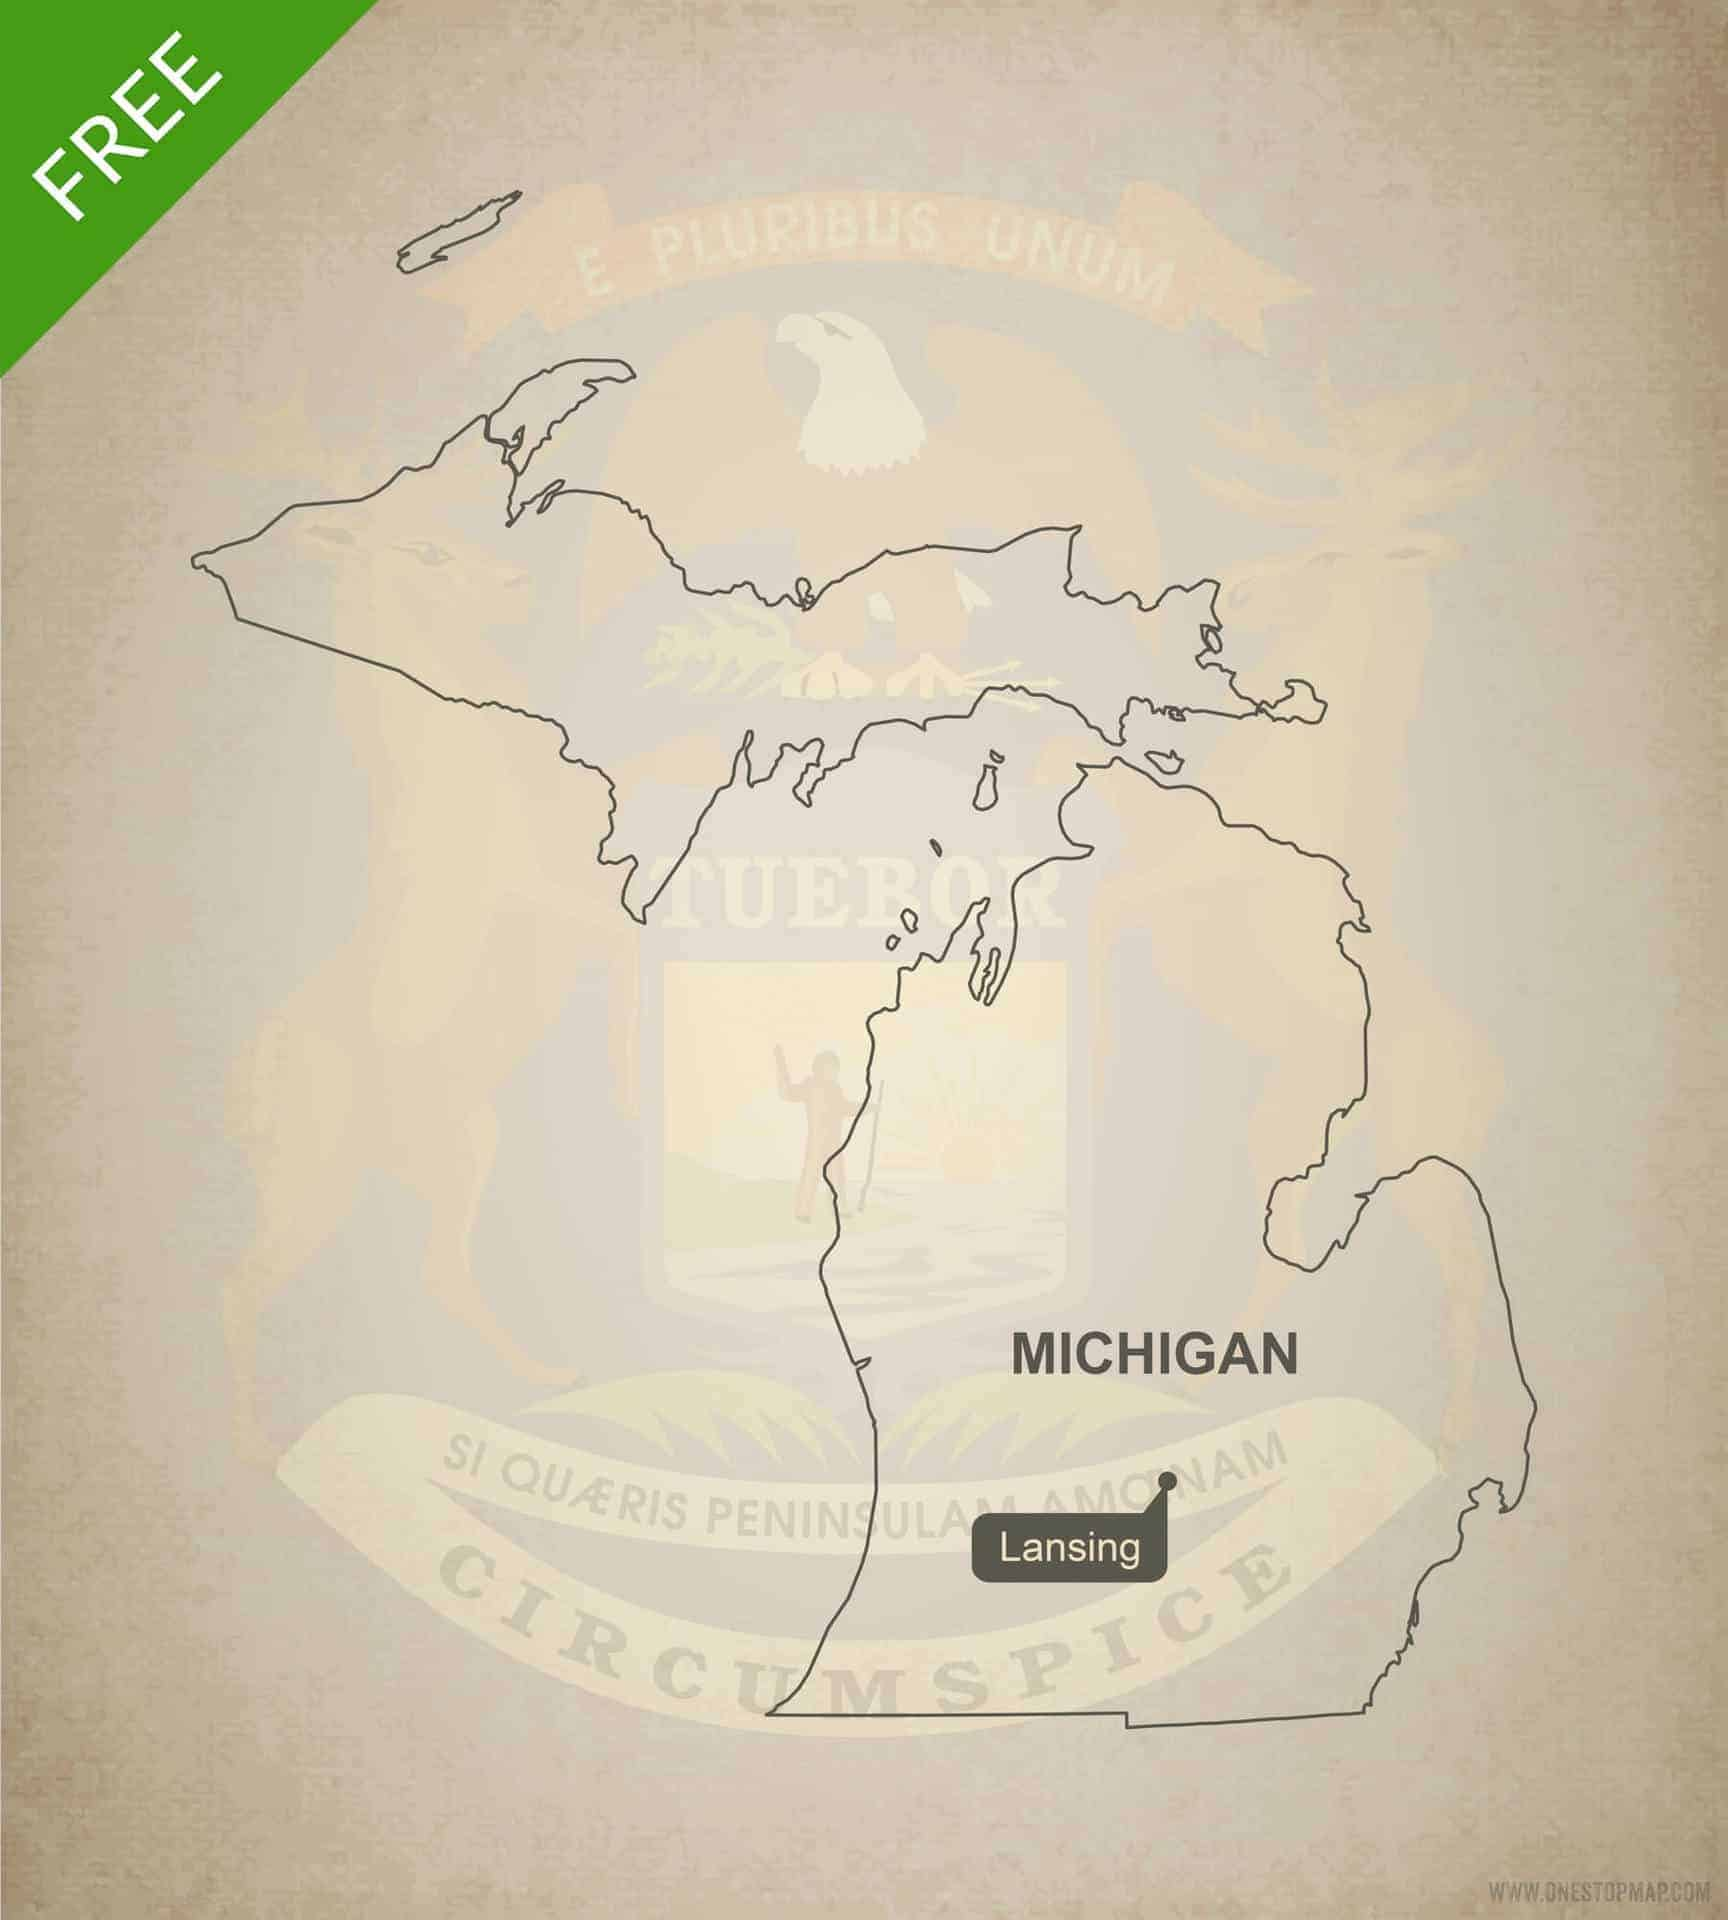 Us 12 Michigan Map.Free Vector Map Of Michigan Outline One Stop Map